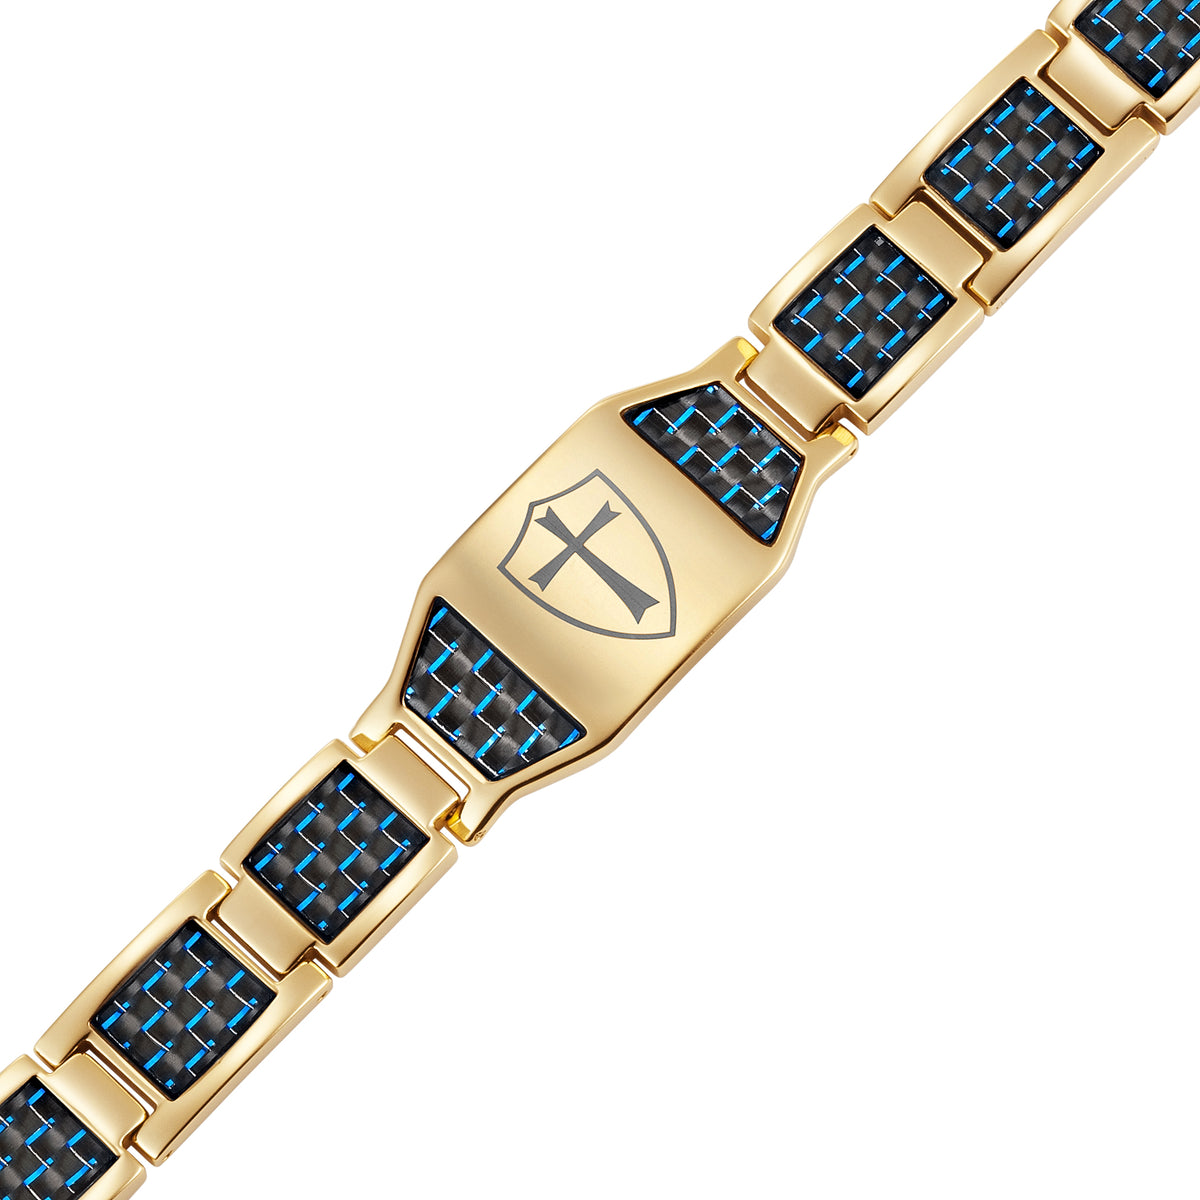 Gold Titanium Bracelet with Blue Carbon Fiber Knights Templar Cross Shield